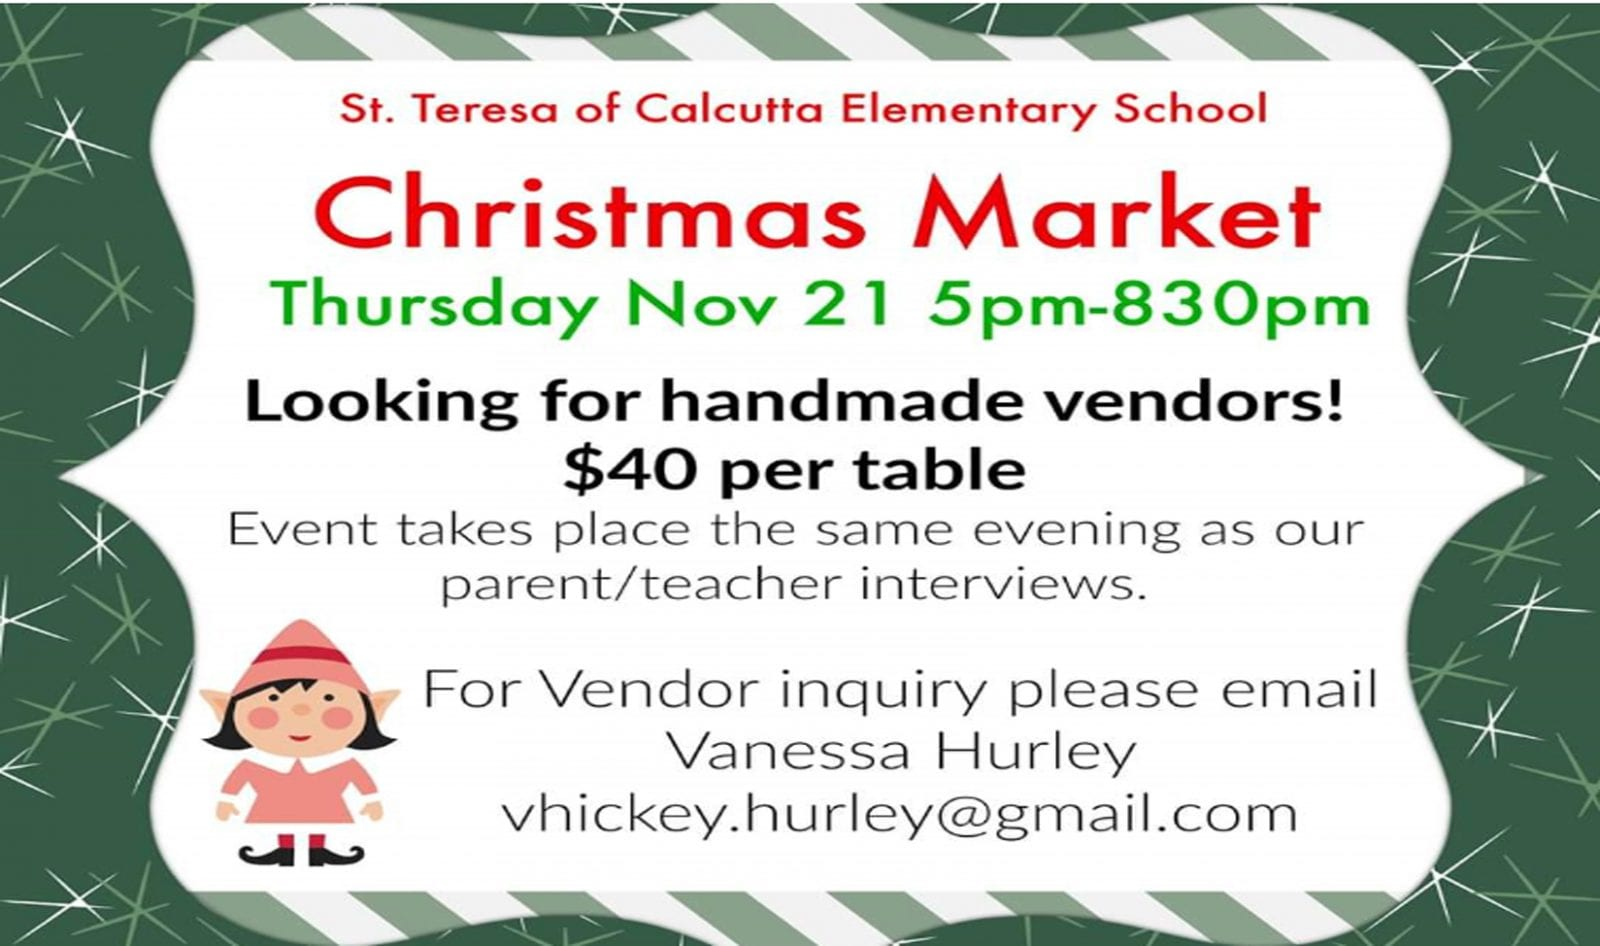 The Christmas Market is Coming!